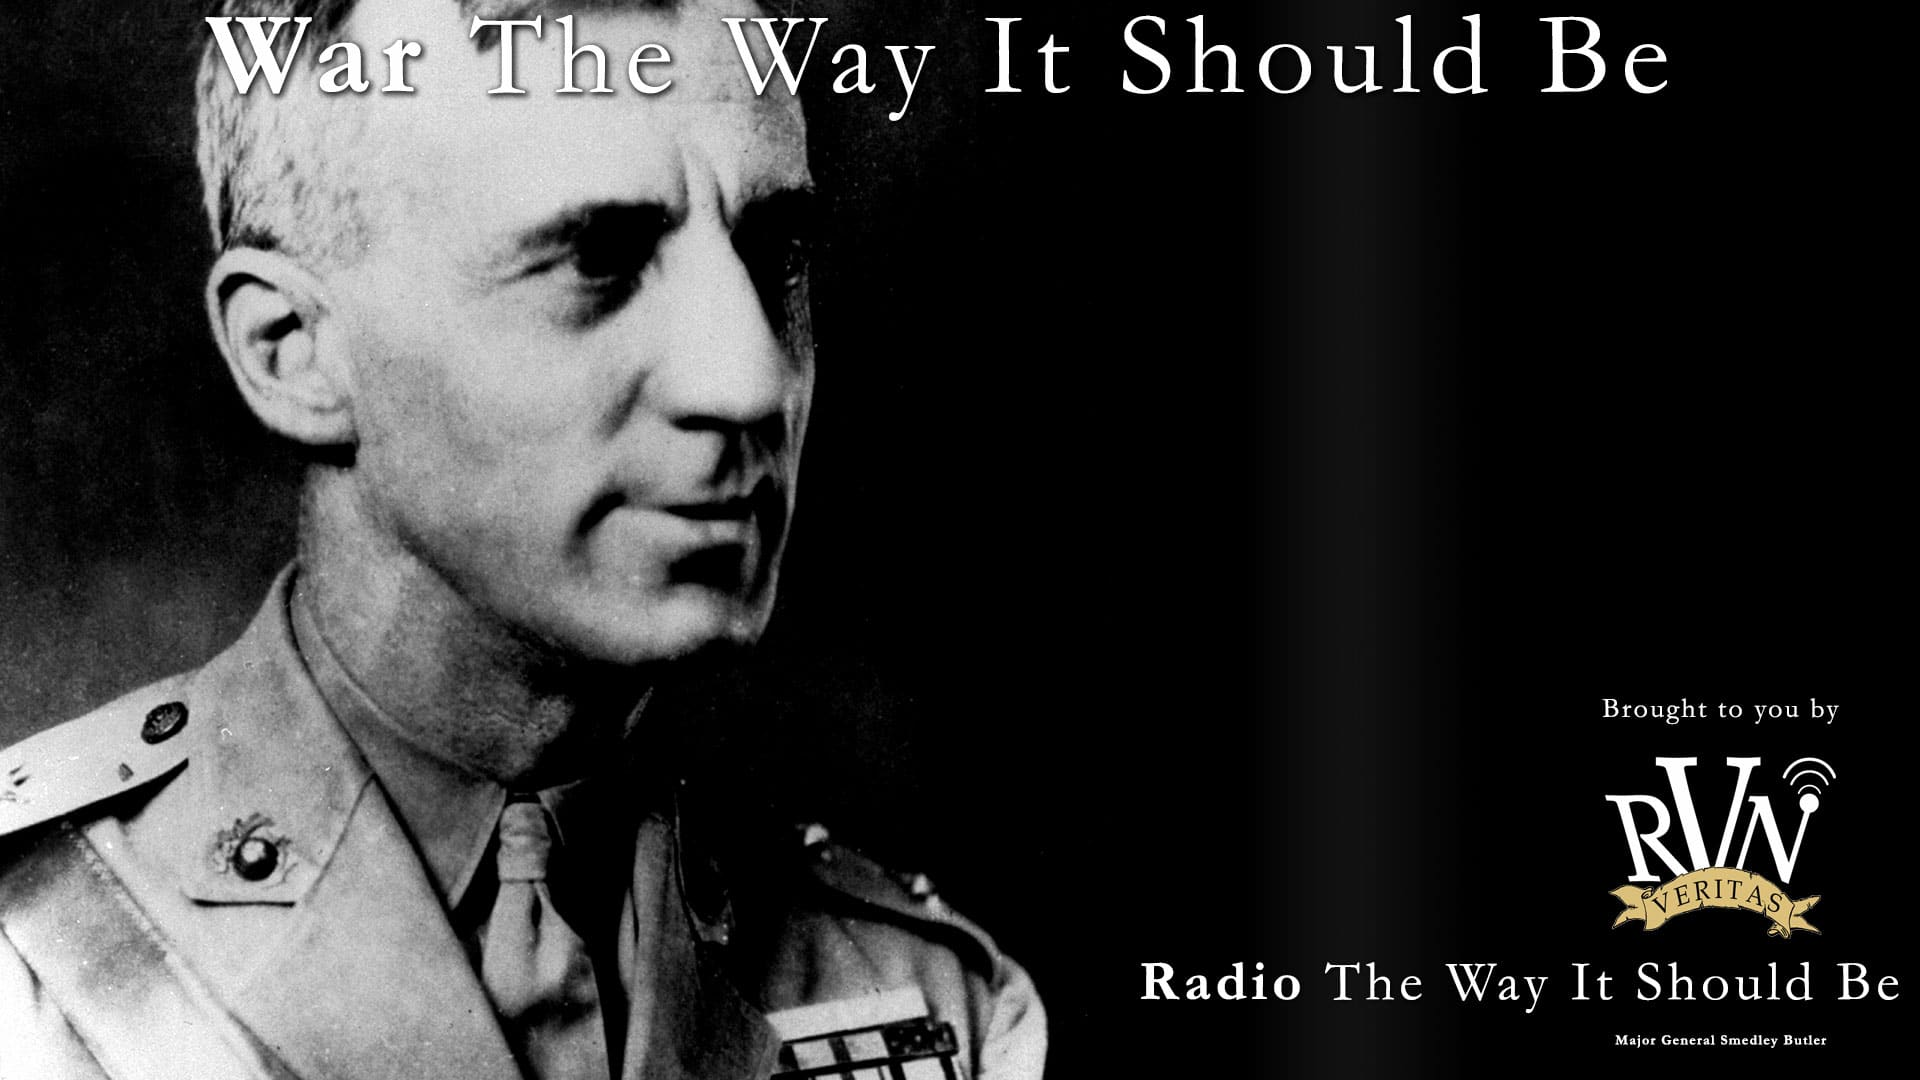 Radio The Way It Shoulod Be Presents: War The Way It Should Be, Featuring Smedley Butler